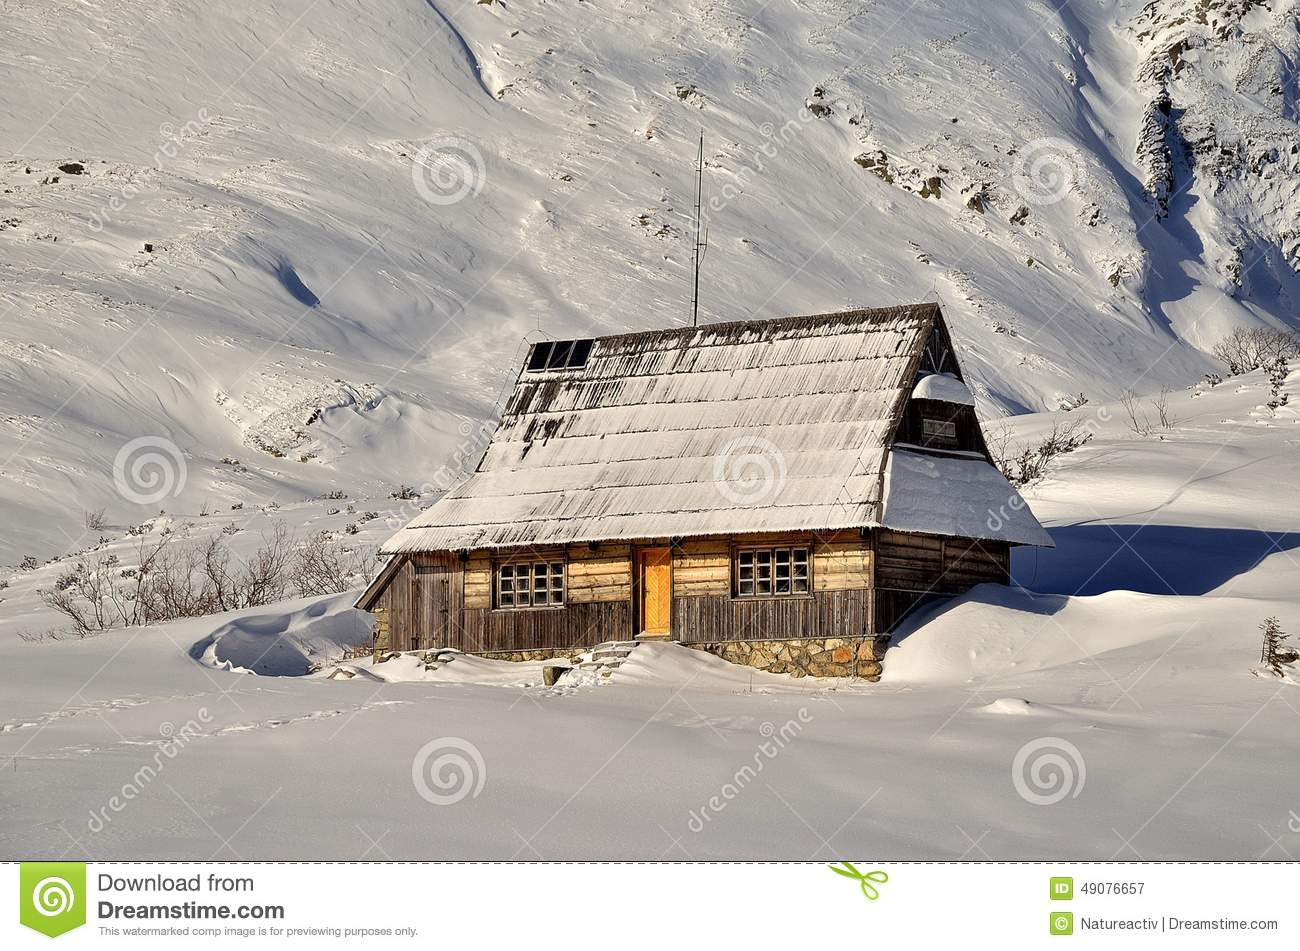 Hut in mountains